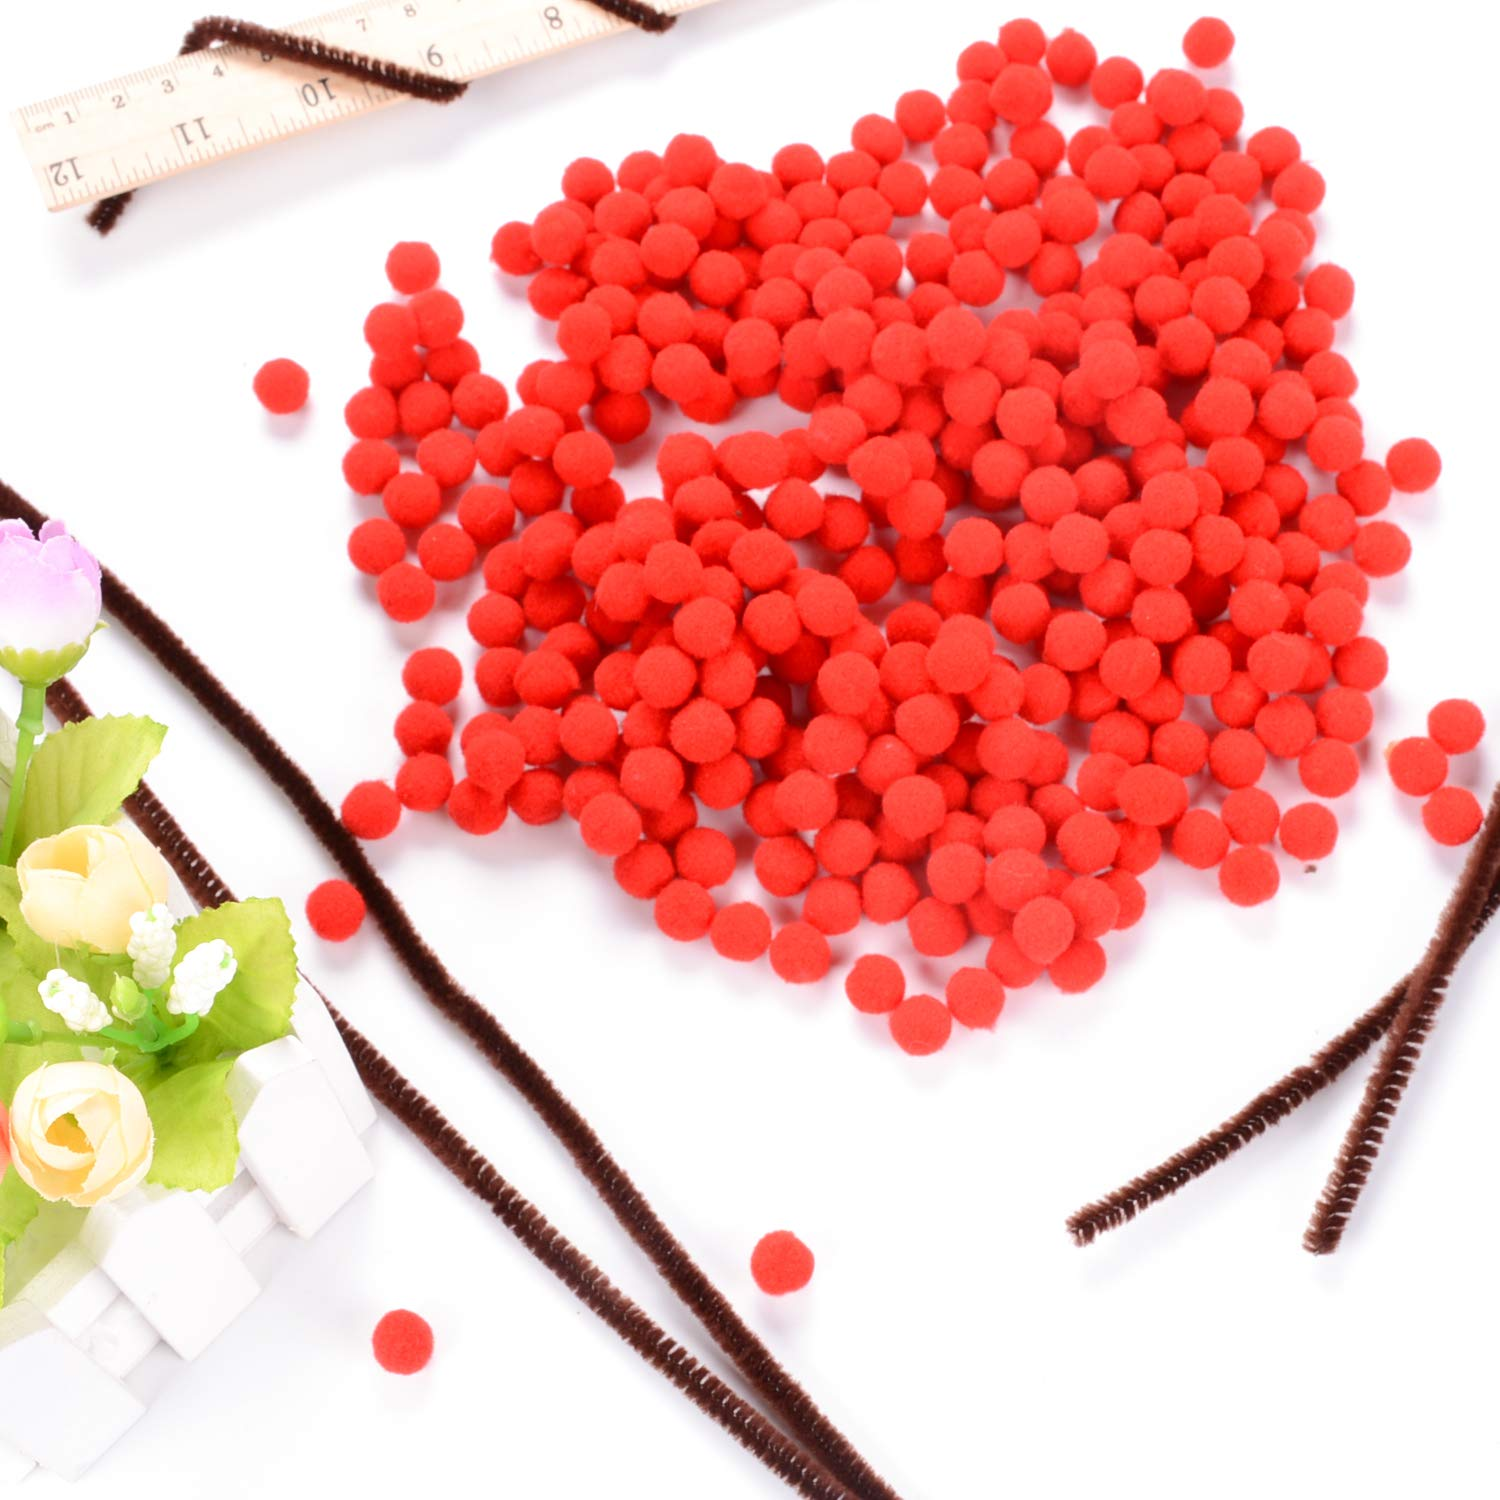 eborder 100 Pieces Christmas Brown Pipe Cleaners Chenille Stems and 300 Pieces Red Pom Poms Pompoms for Christmas Crafts